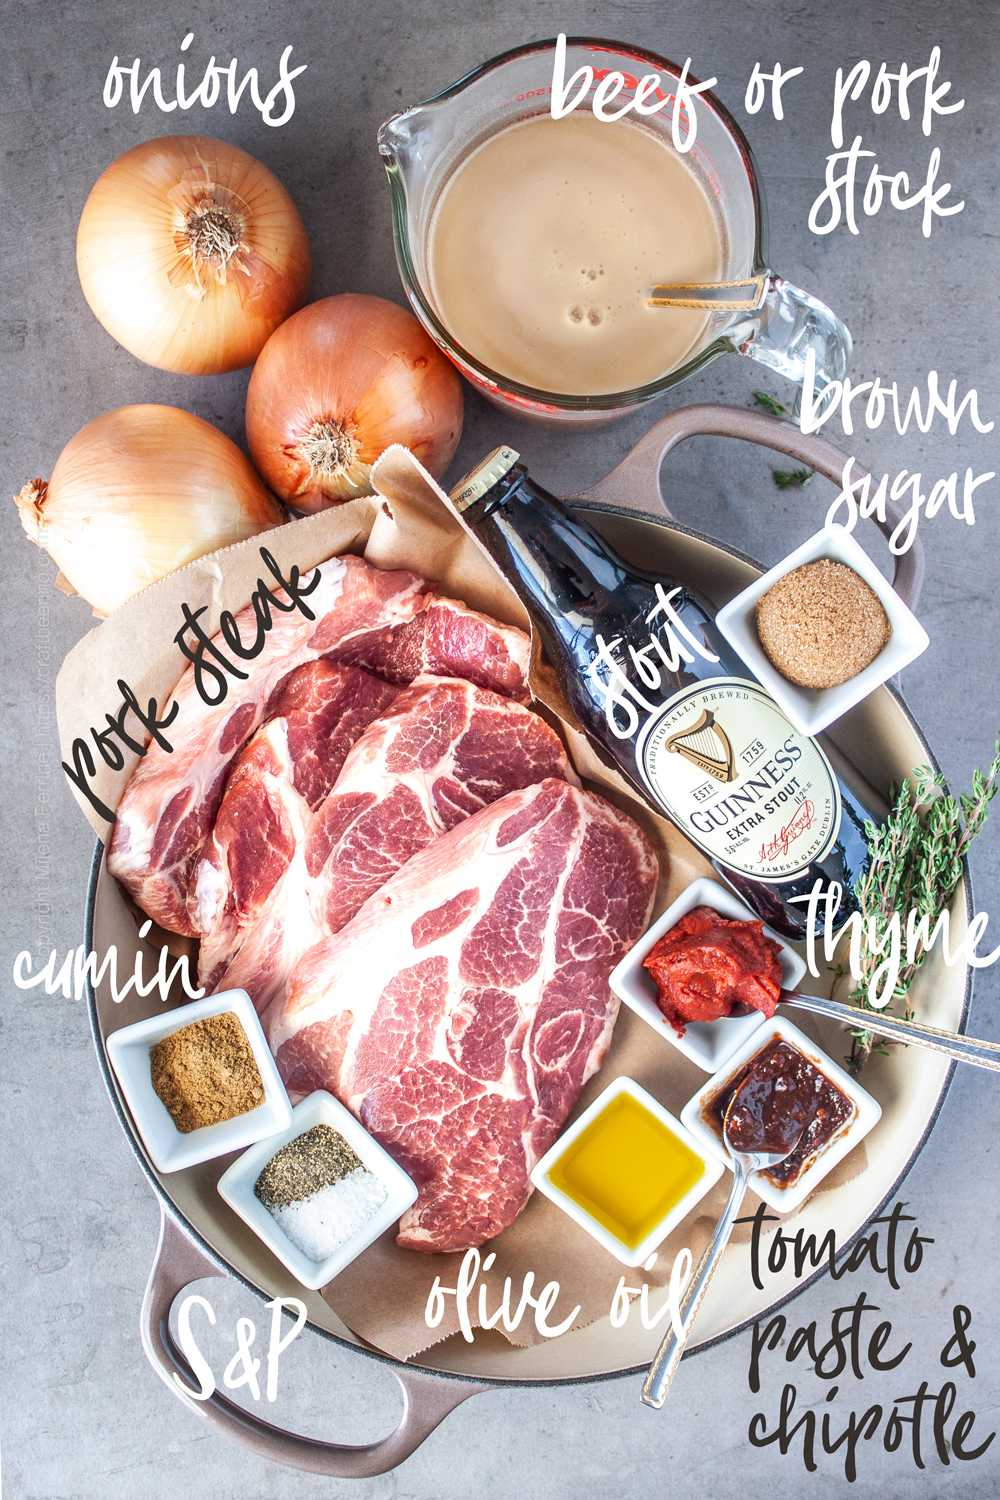 Pork steak and other ingredients needed to braise it.